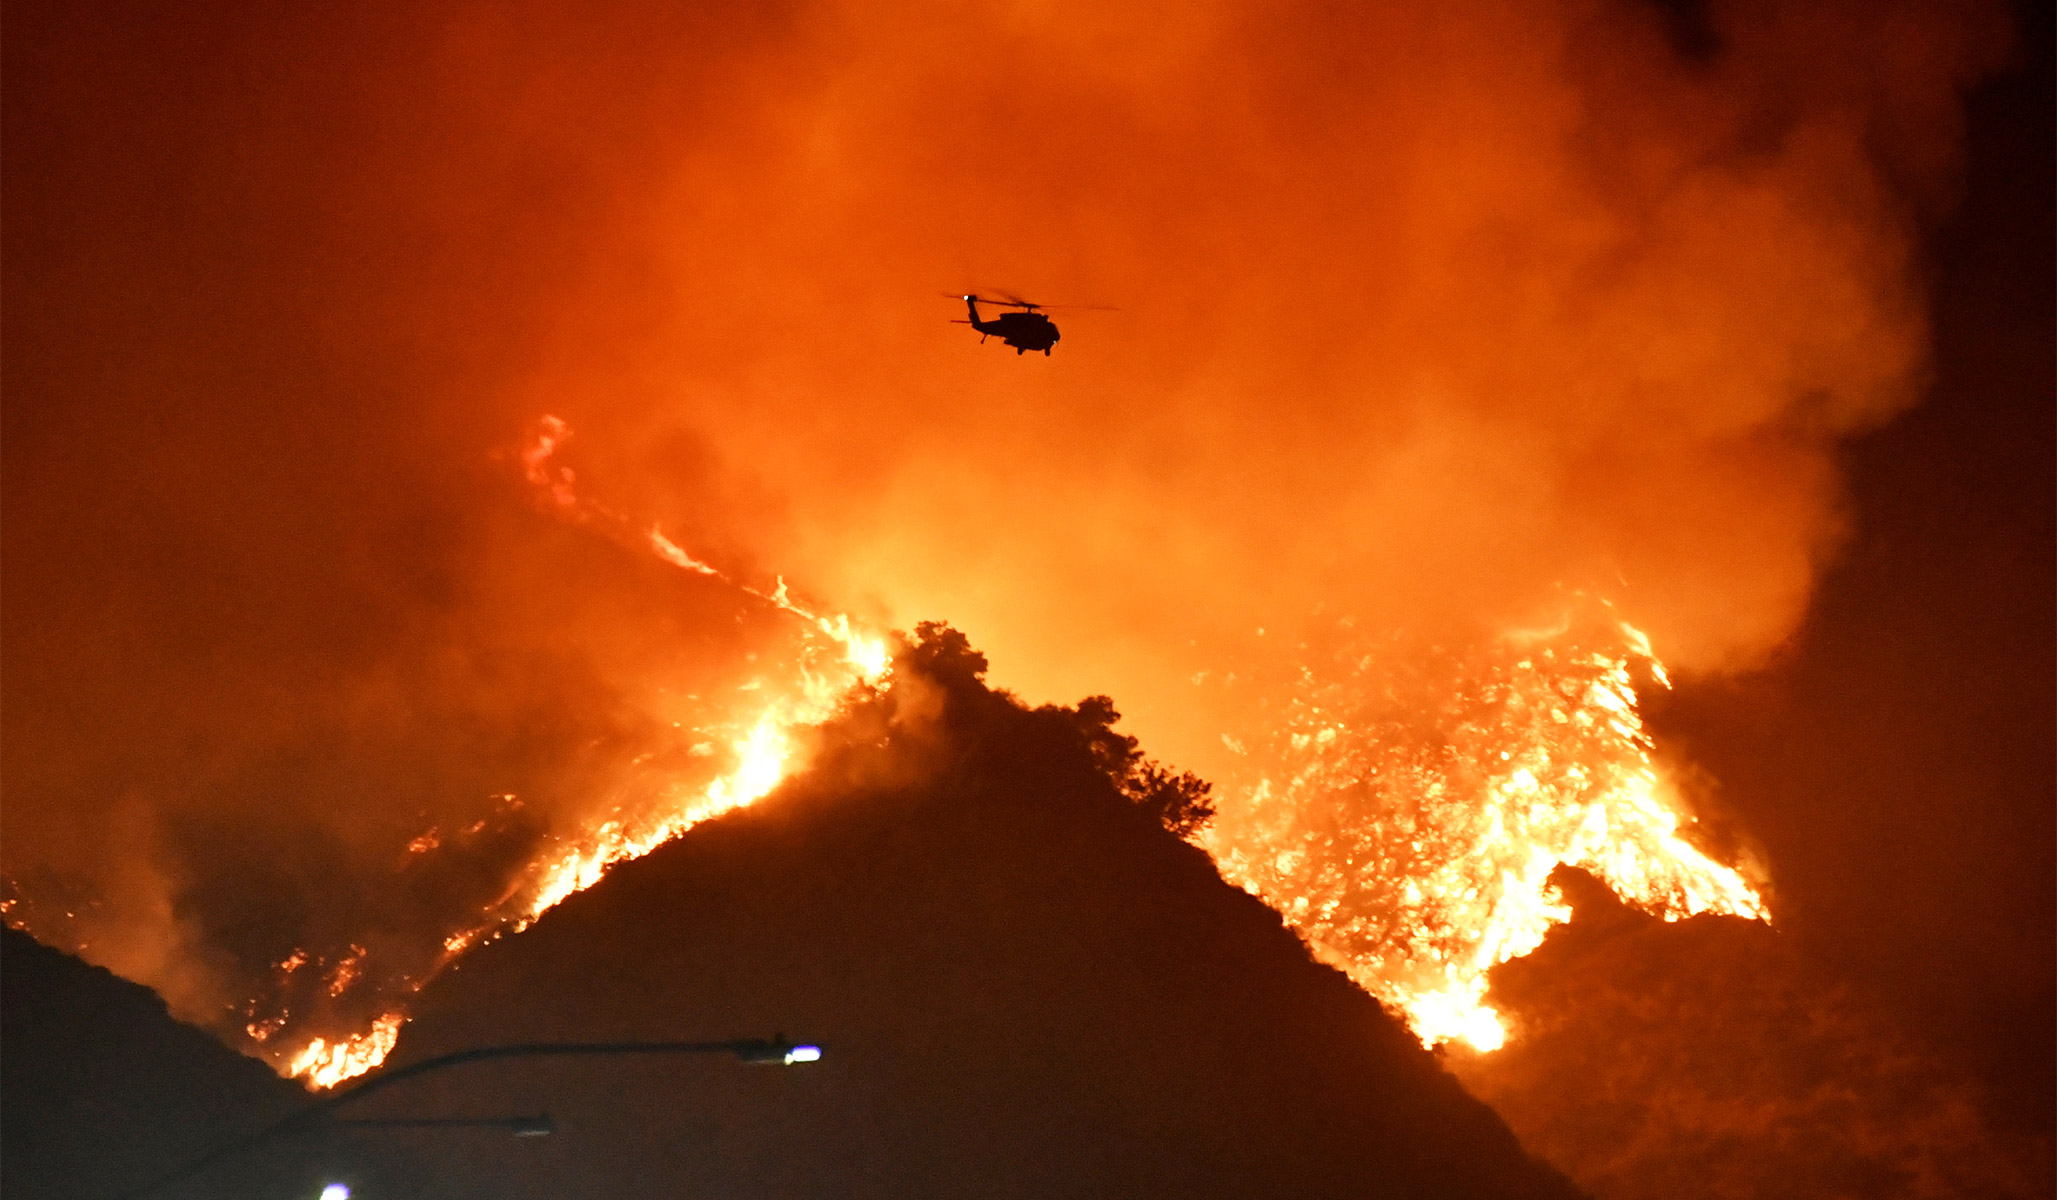 Policymakers Played a Hand in California's Wildfire Issues